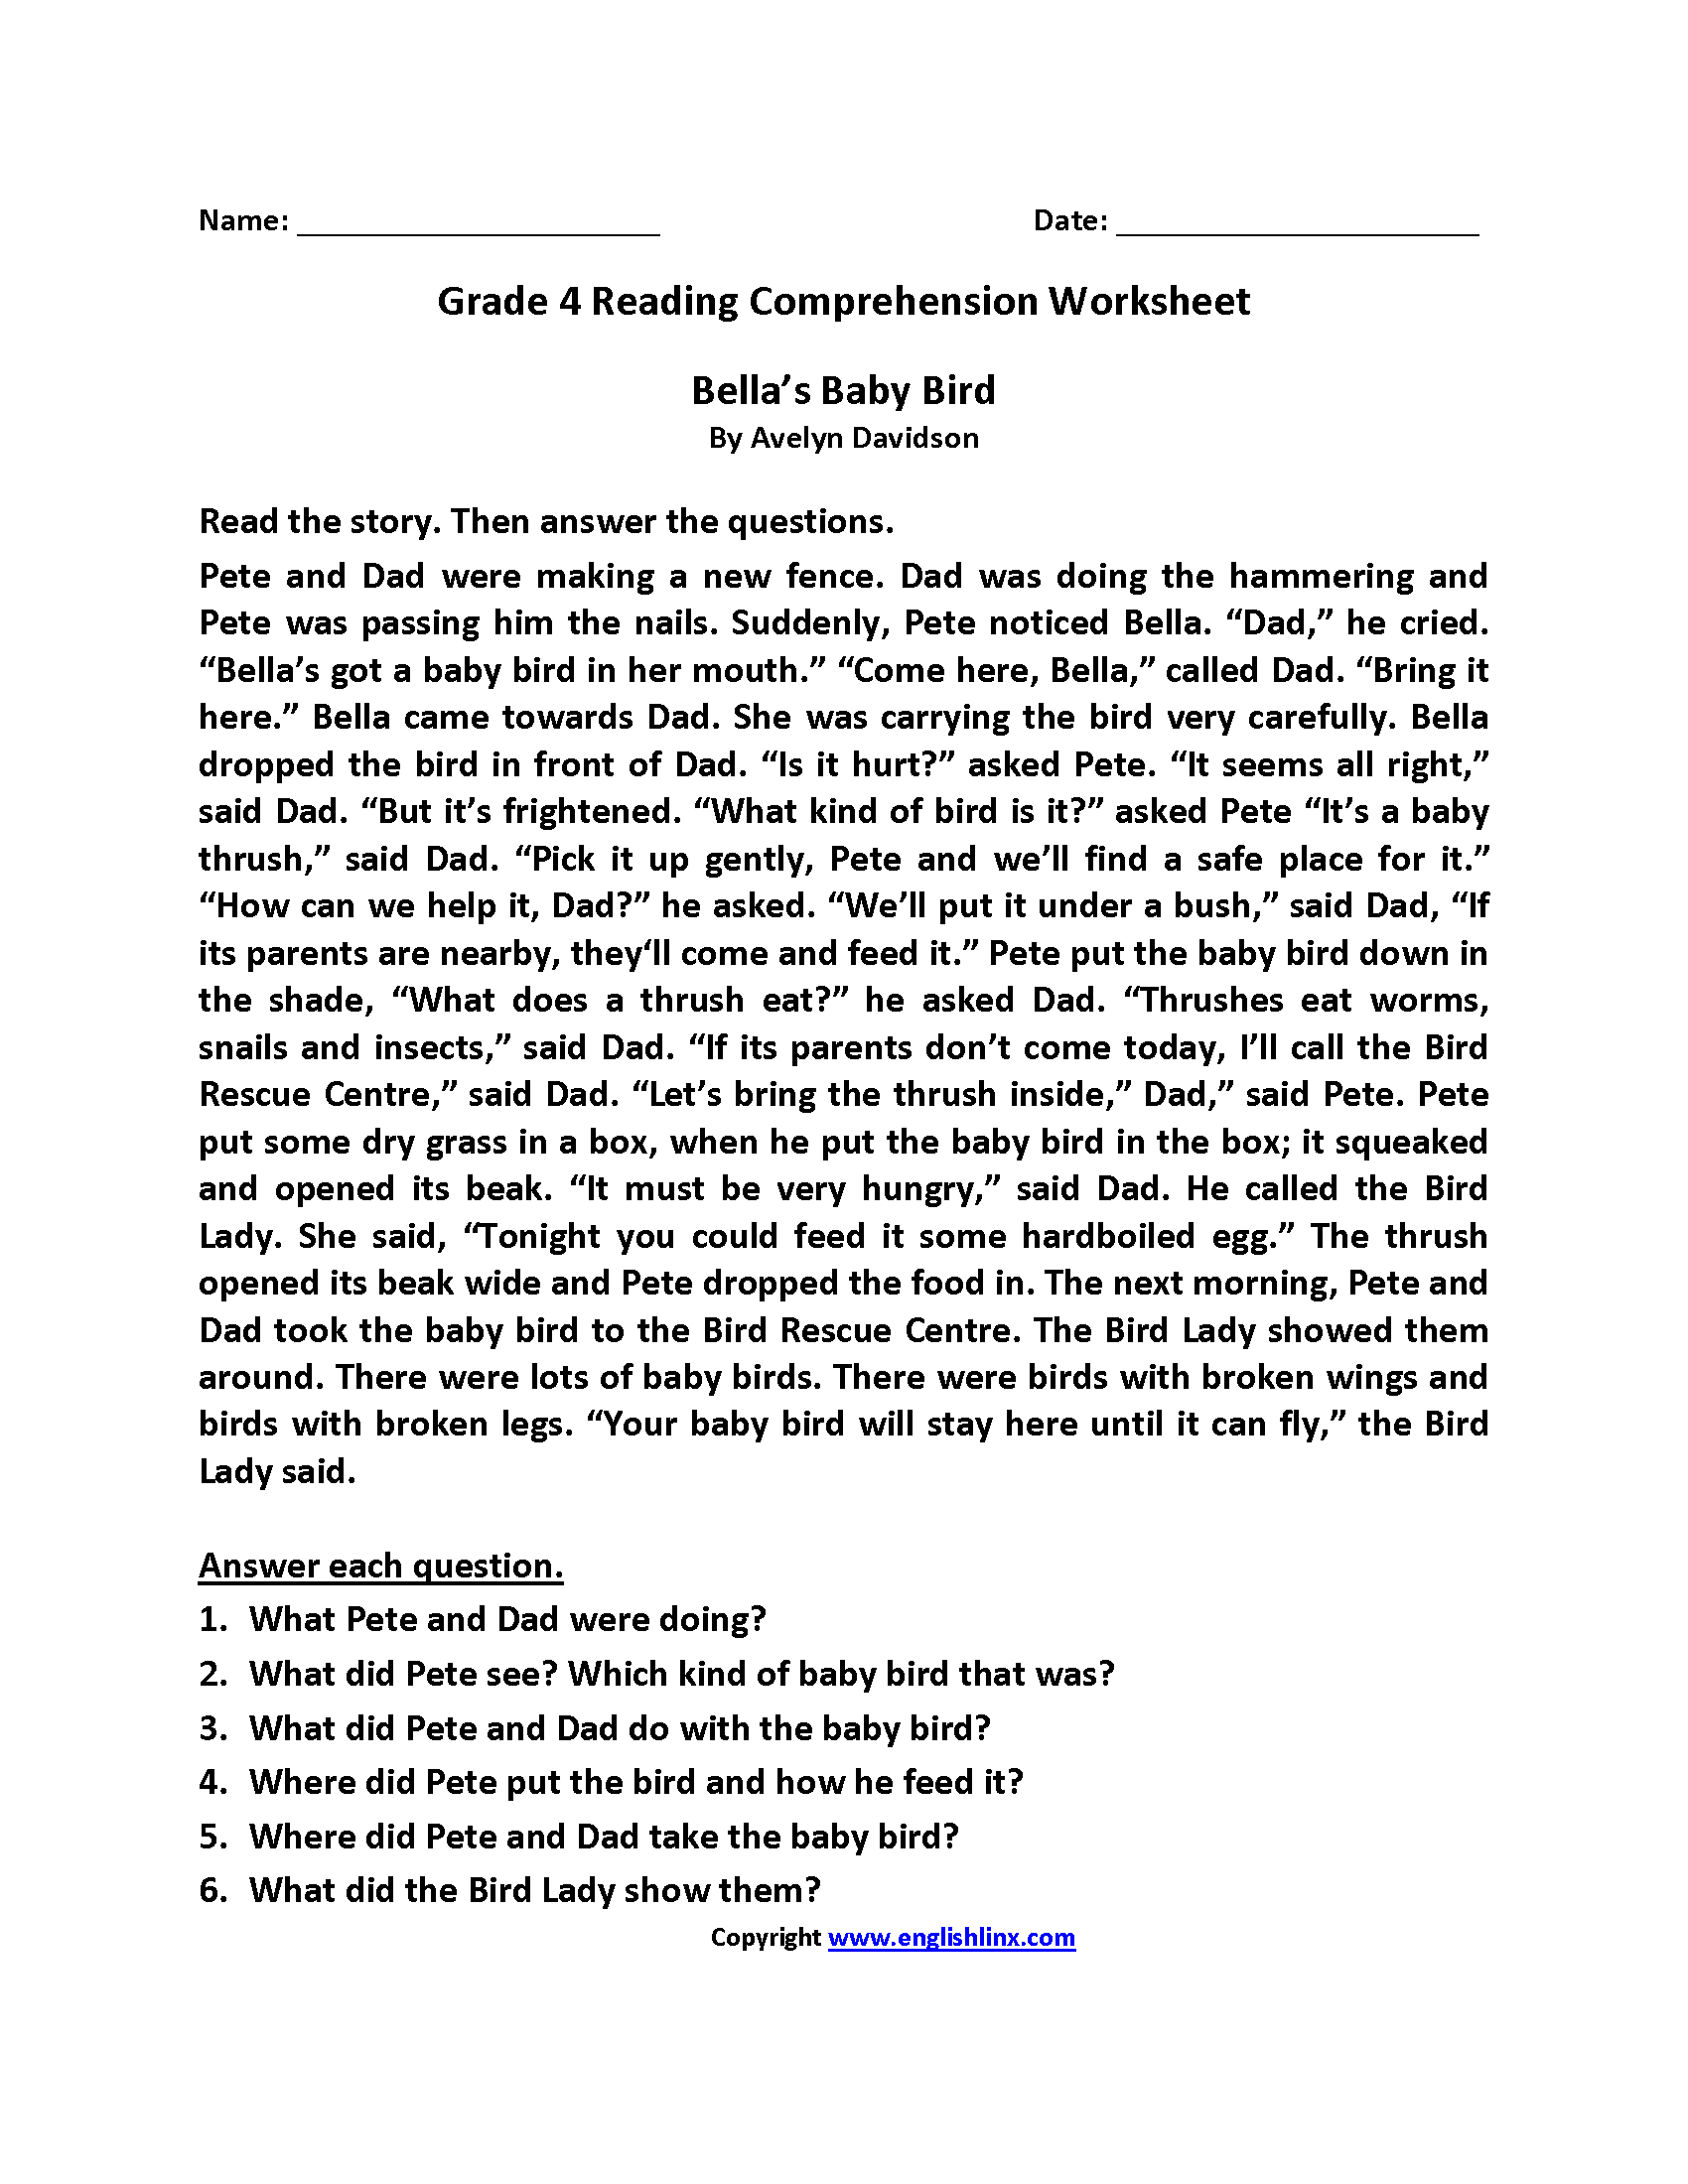 Worksheets 4th Grade Reading Comprehension Worksheets reading worksheets fourth grade worksheets